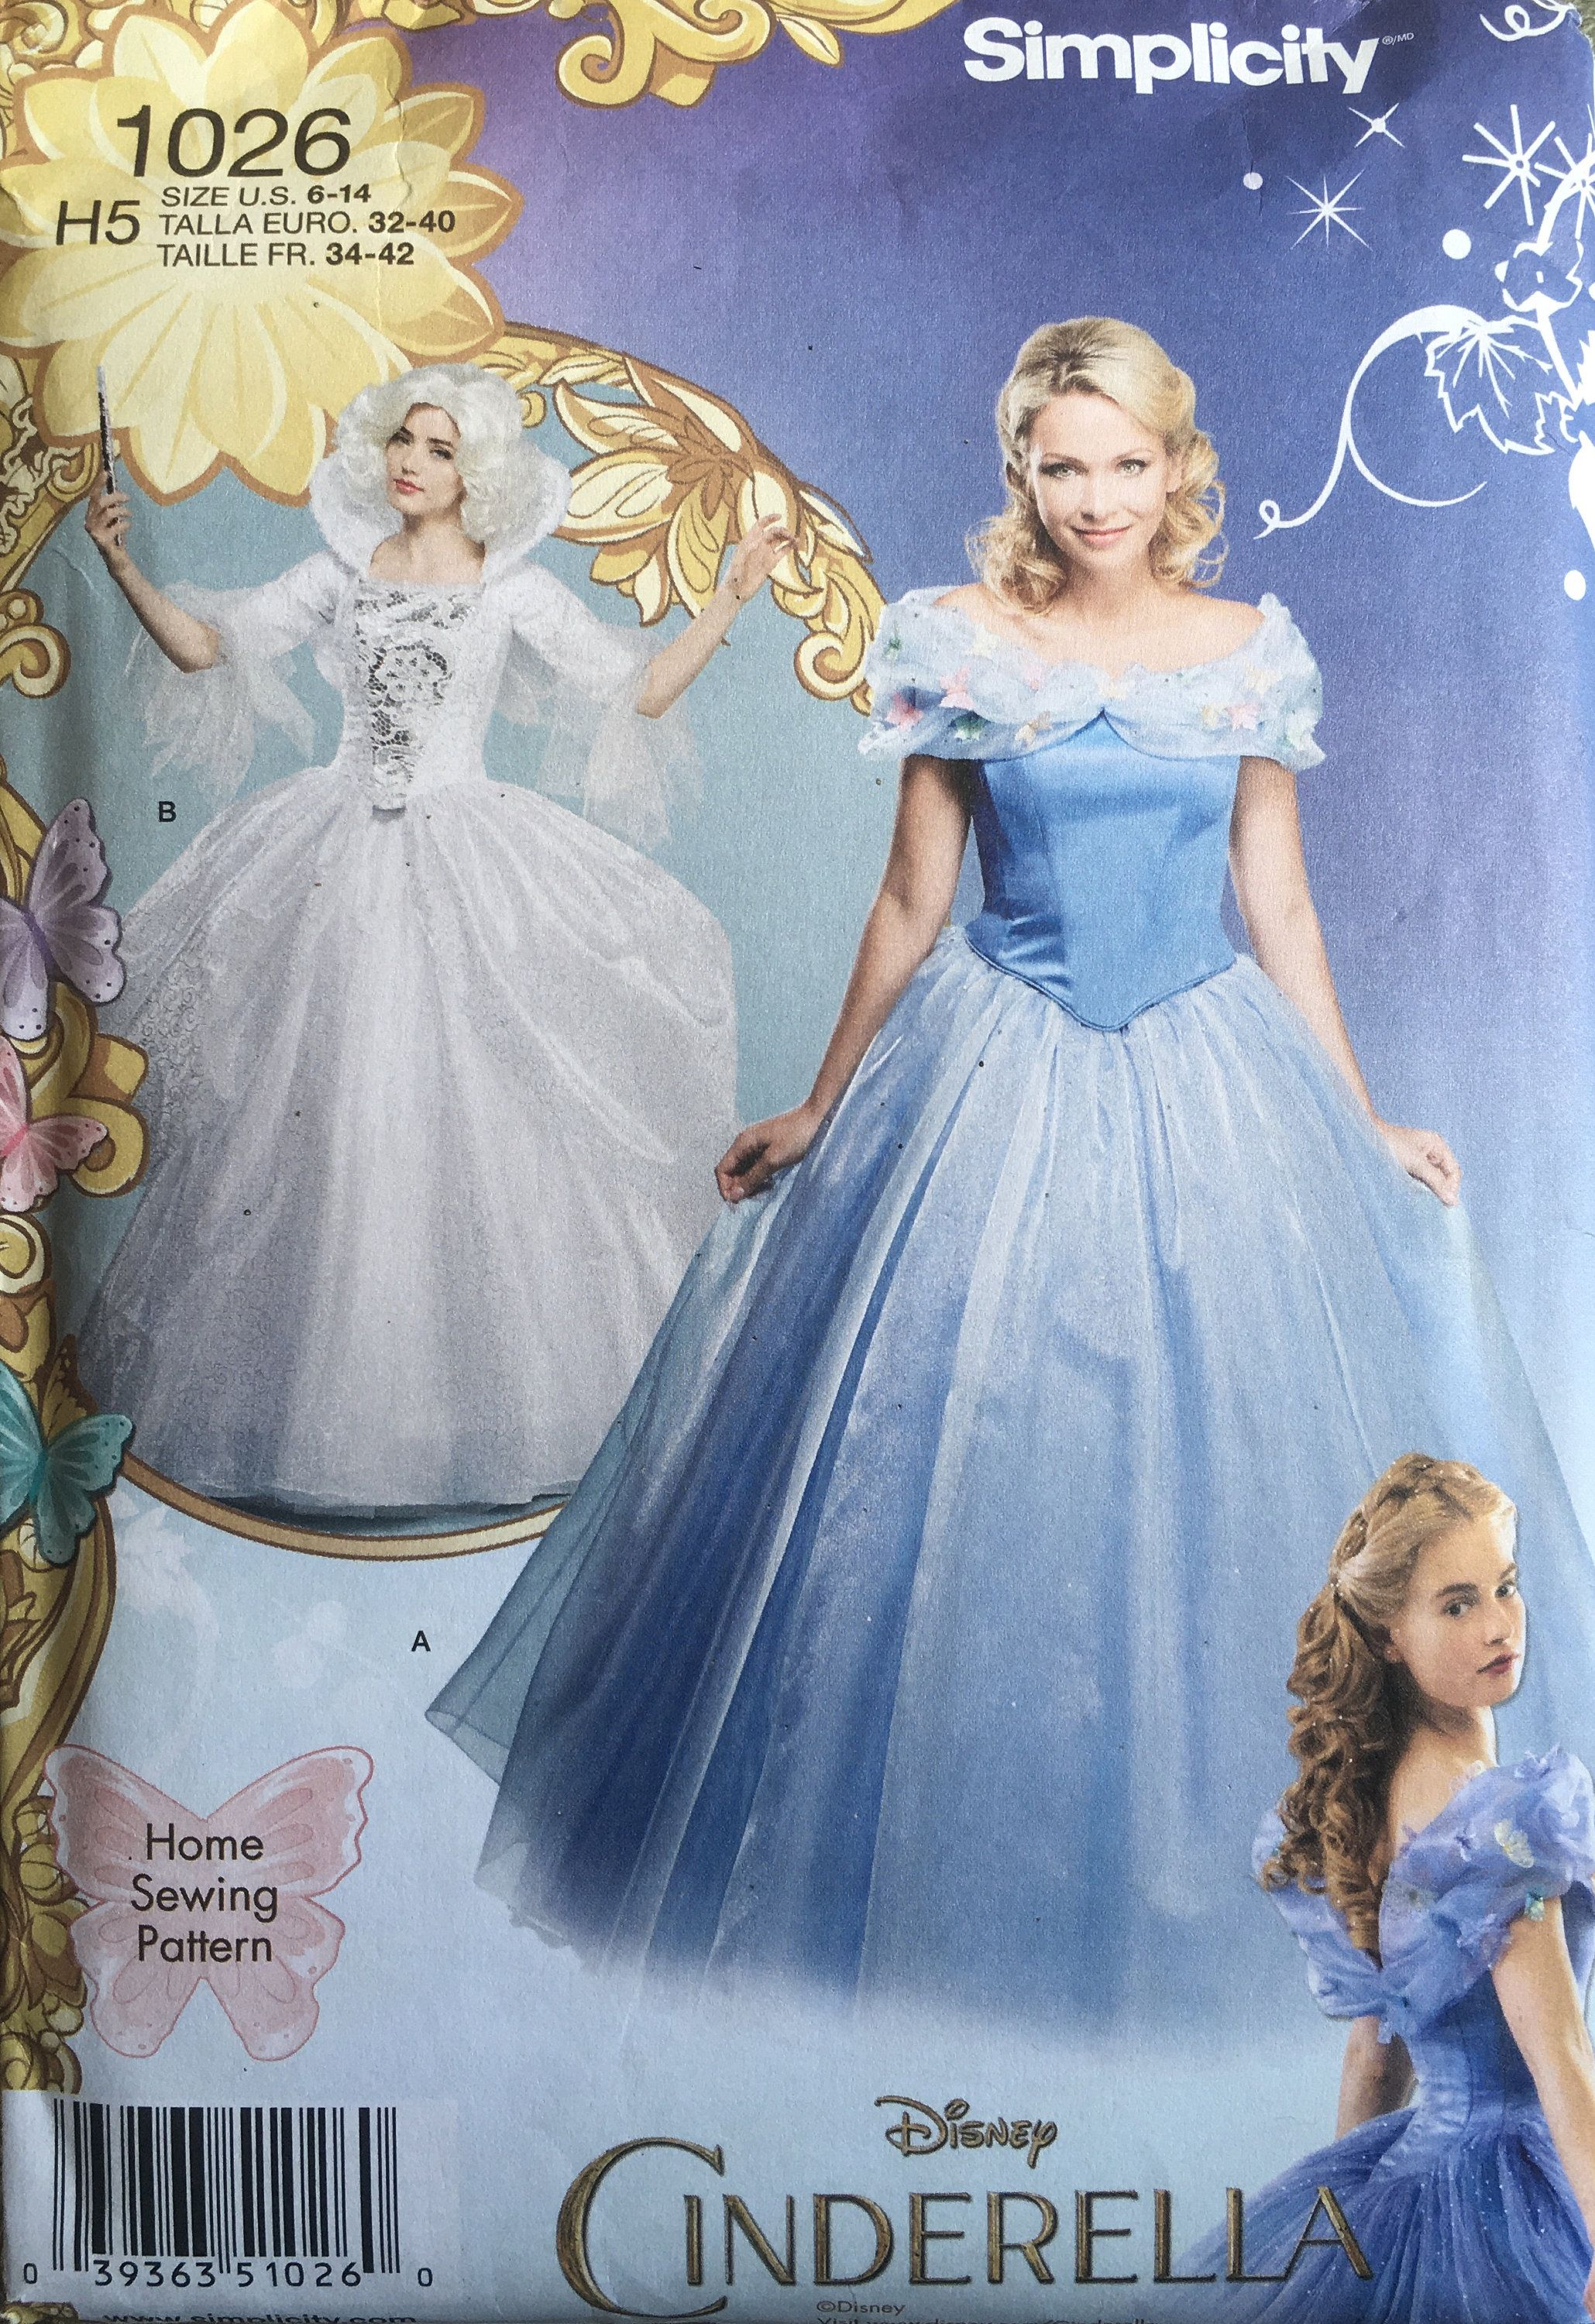 Simplicity 1026 Sewing Pattern Uncut Etsy In 2021 Fairy Godmother Costume Cinderella Fairy Godmother Costume Cinderella Dresses